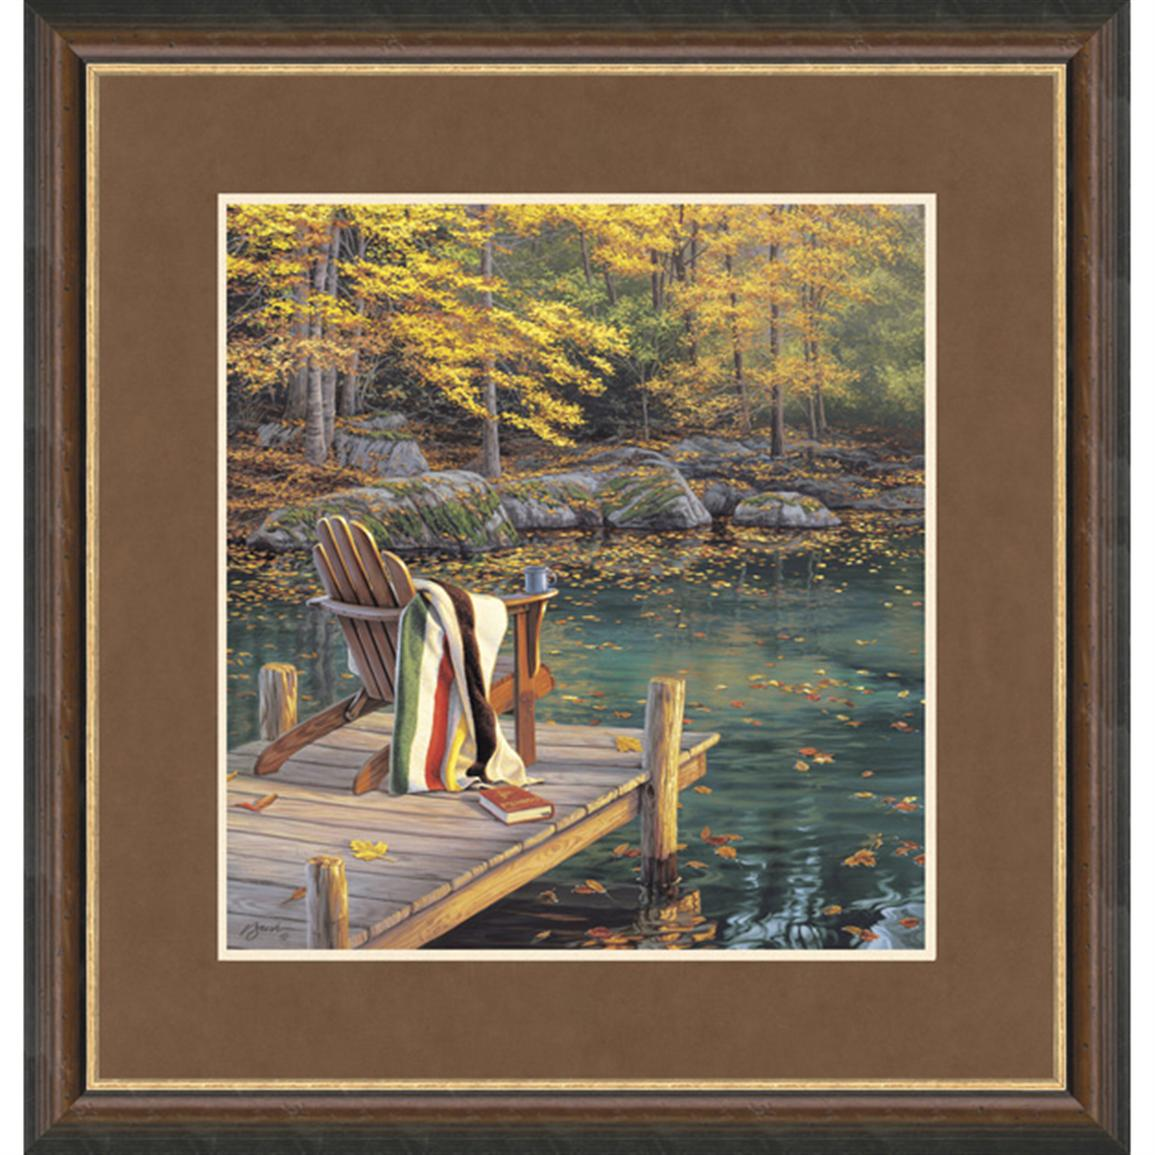 """Reflections on Golden Pond"" By Darrell Bush Signed Limited Edition"